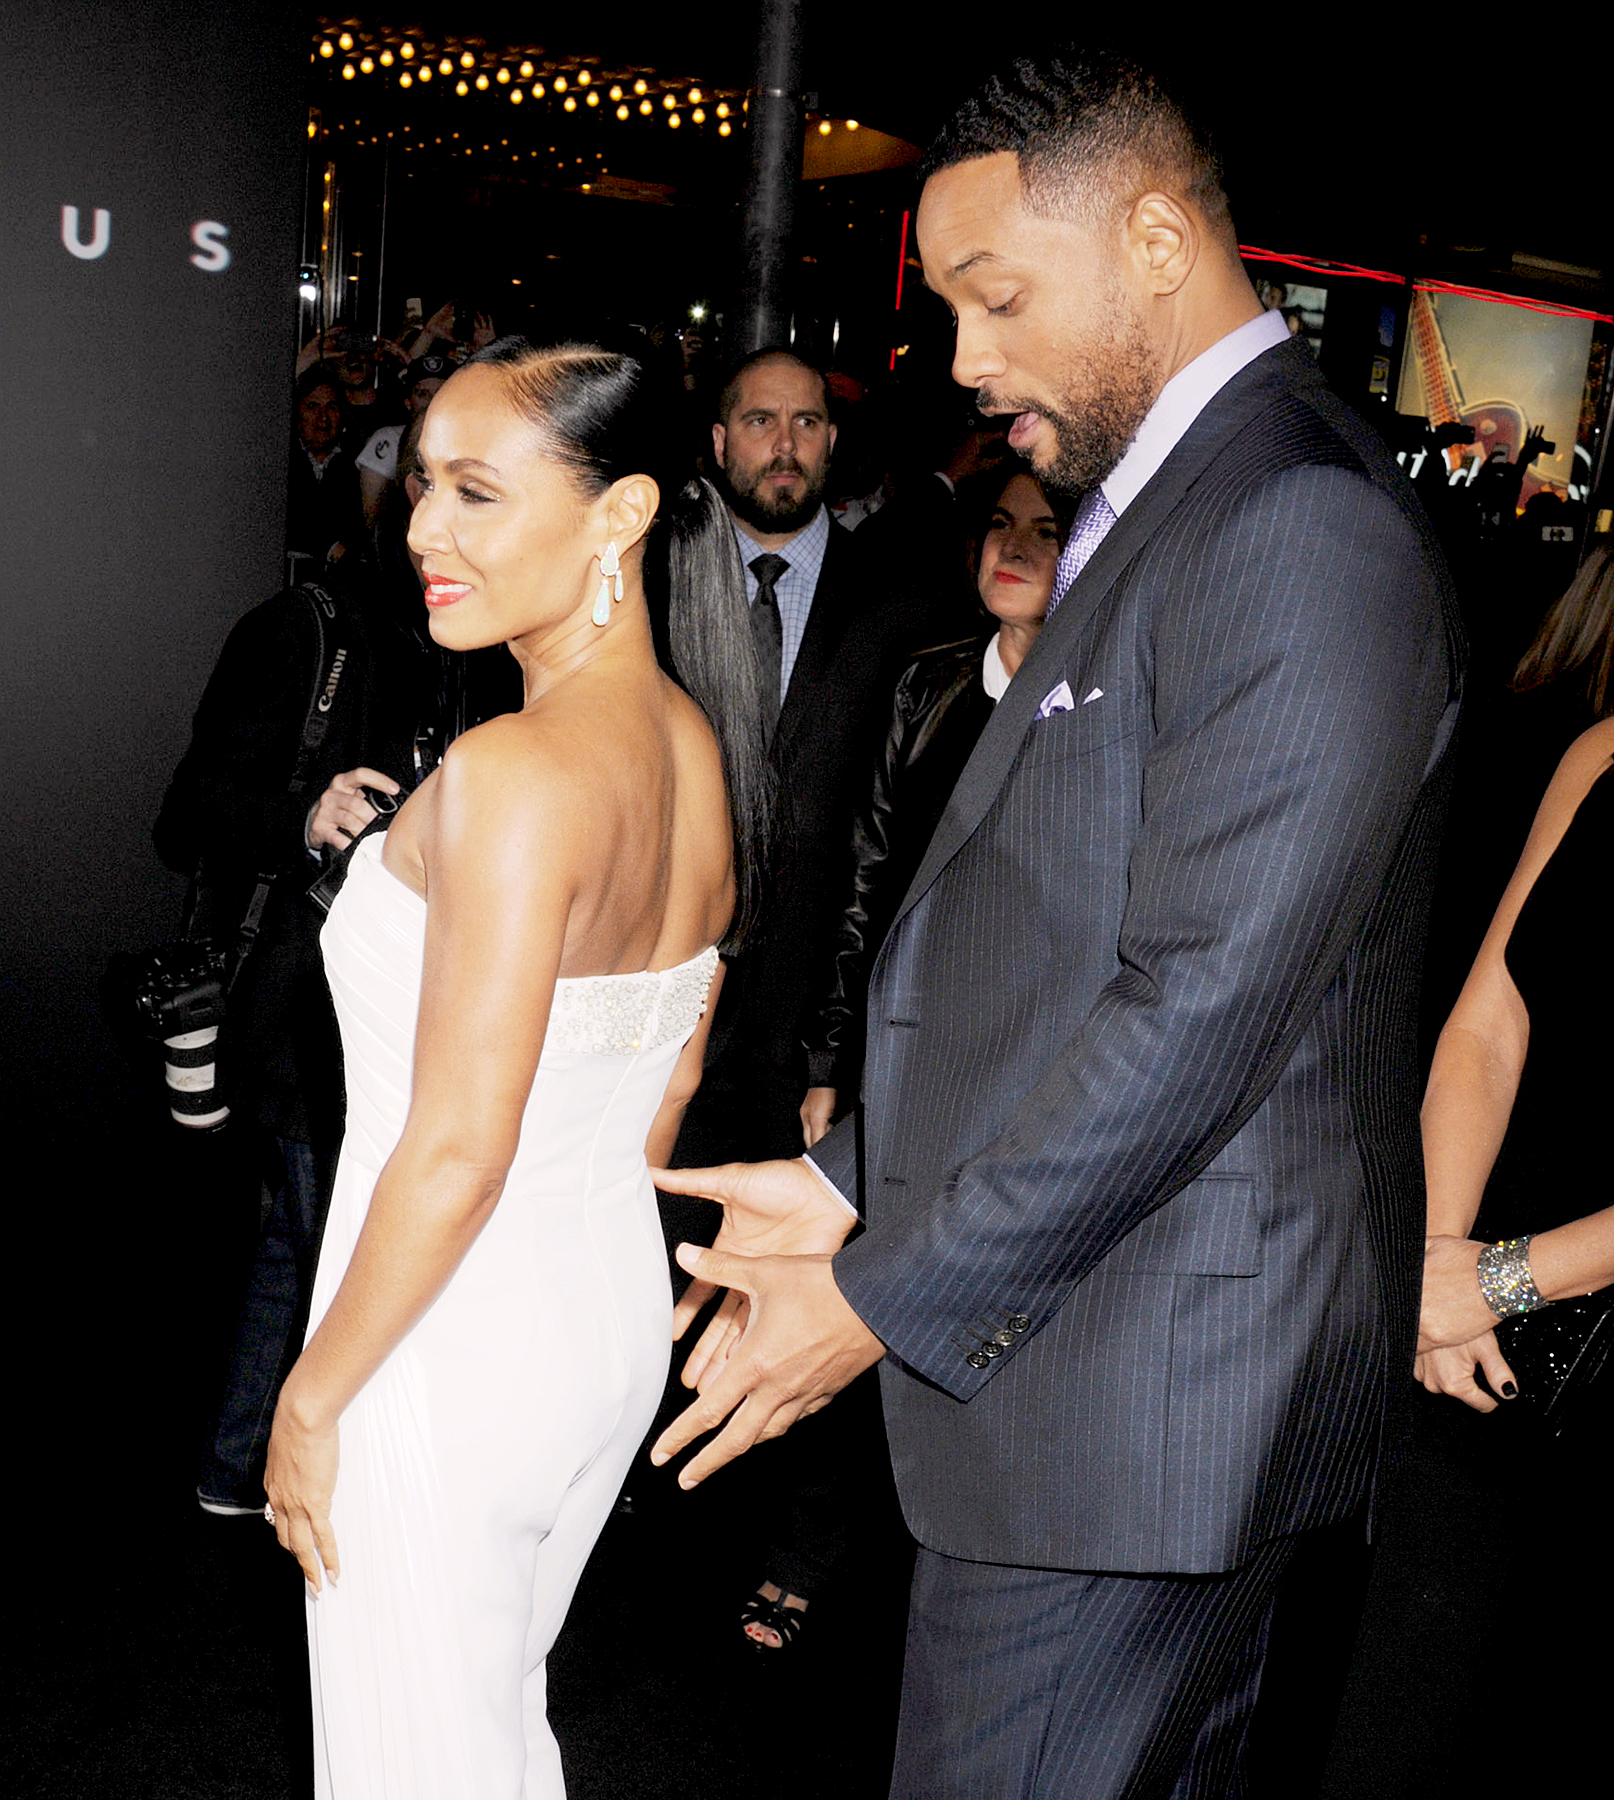 Will Smith and Jada Pinkett Smith attend the Warner Bros. Pictures' 'Focus' premiere at TCL Chinese Theatre on Feb. 24.